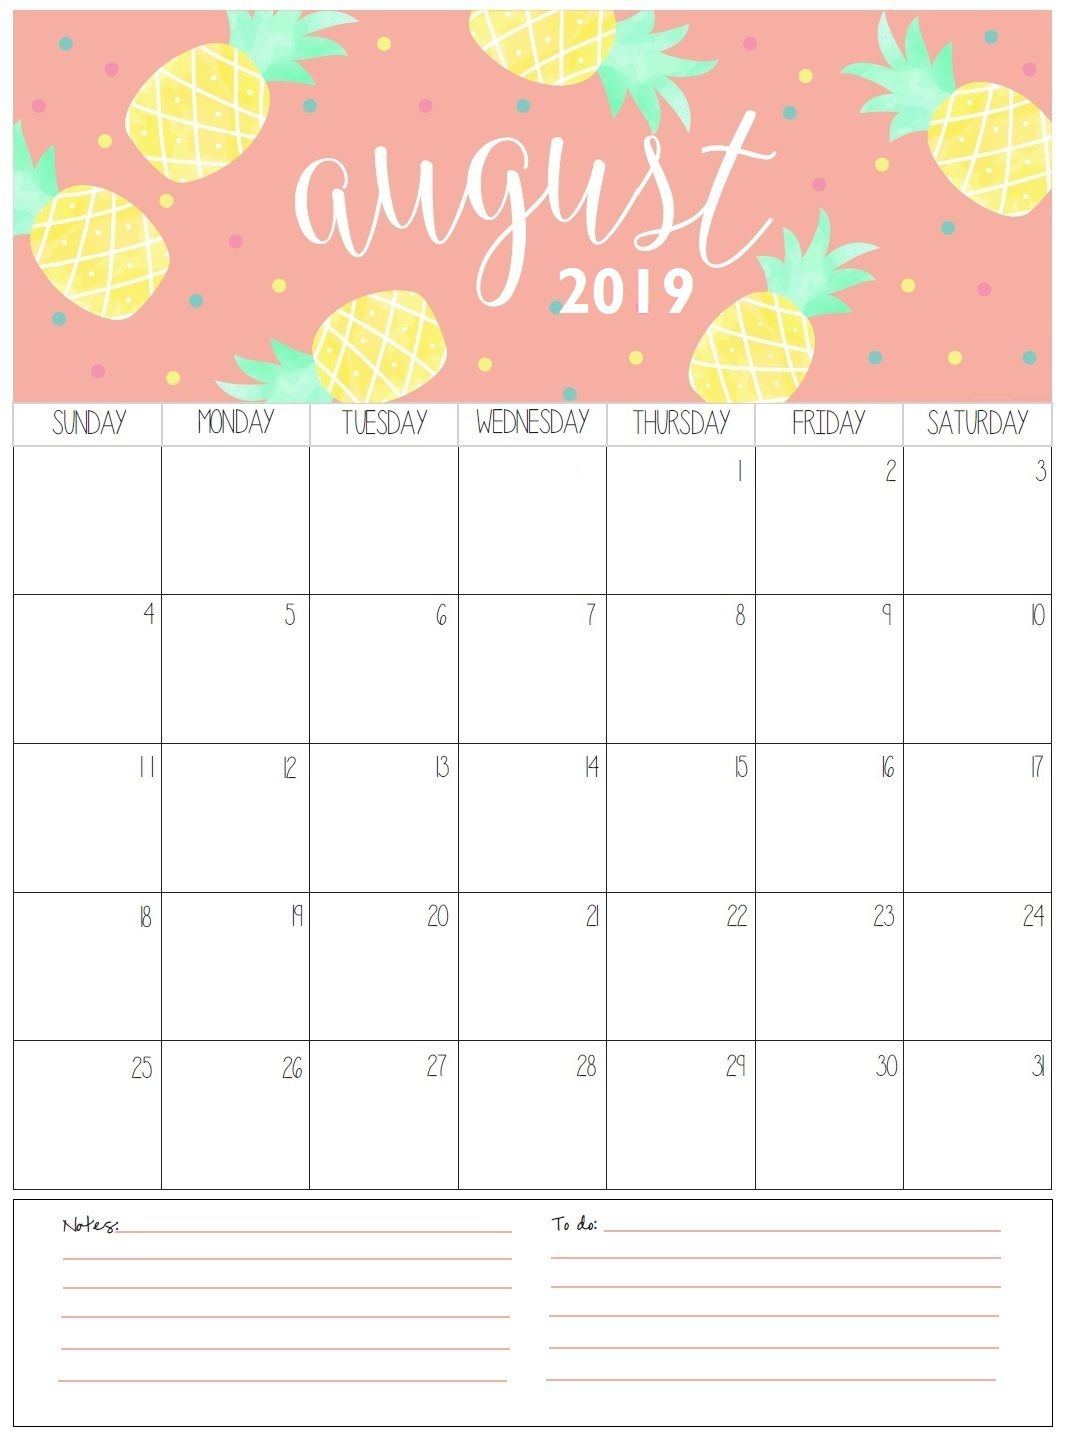 August 2019 Calendar With Holidays.August Monthly Calendar 2019 Organization August Calendar Free